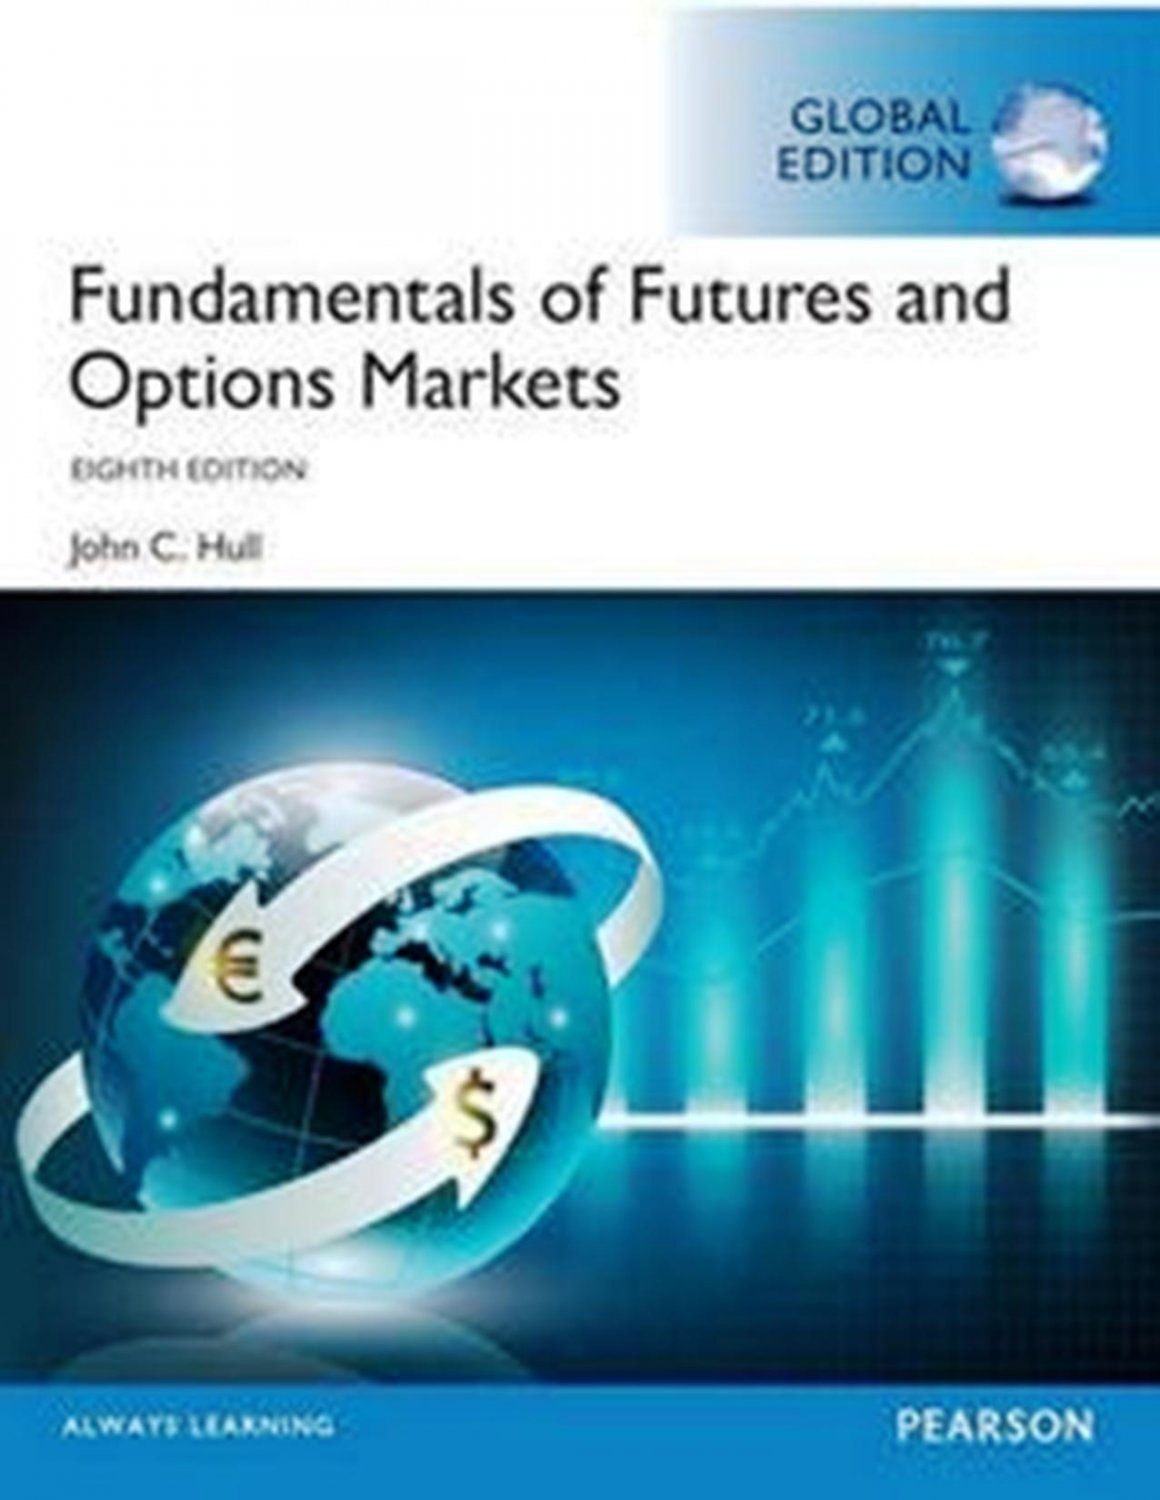 Fundamentals+of+Futures+and+Options+Markets,+8th+edition,+Global+ ...